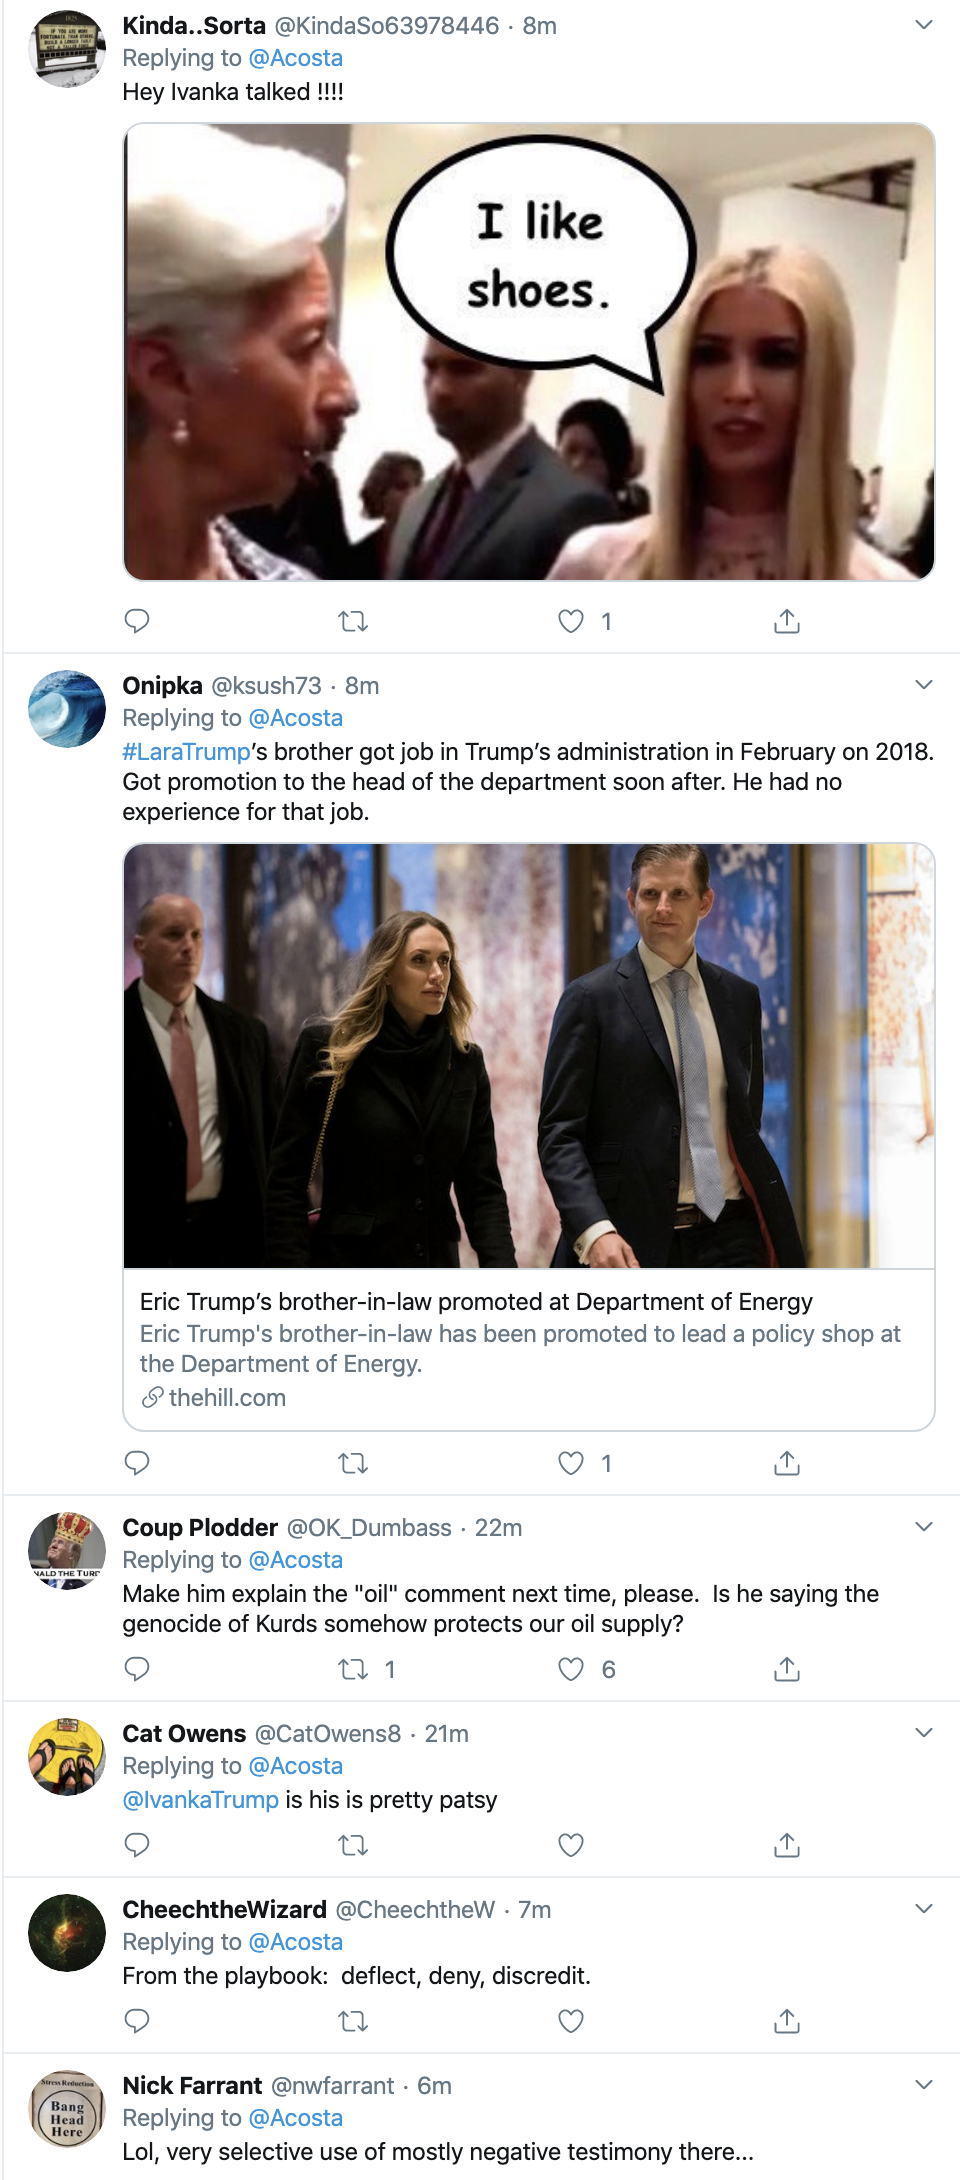 Screen-Shot-2019-10-18-at-12.20.27-PM Acosta Upstages Trump With Friday Afternoon Muti-Tweet Take Down Corruption Crime Domestic Policy Donald Trump Education Election 2016 Election 2020 Featured Feminism History Human Rights Impeachment Investigation Military National Security Politics Racism Terrorism Top Stories War Women's Rights